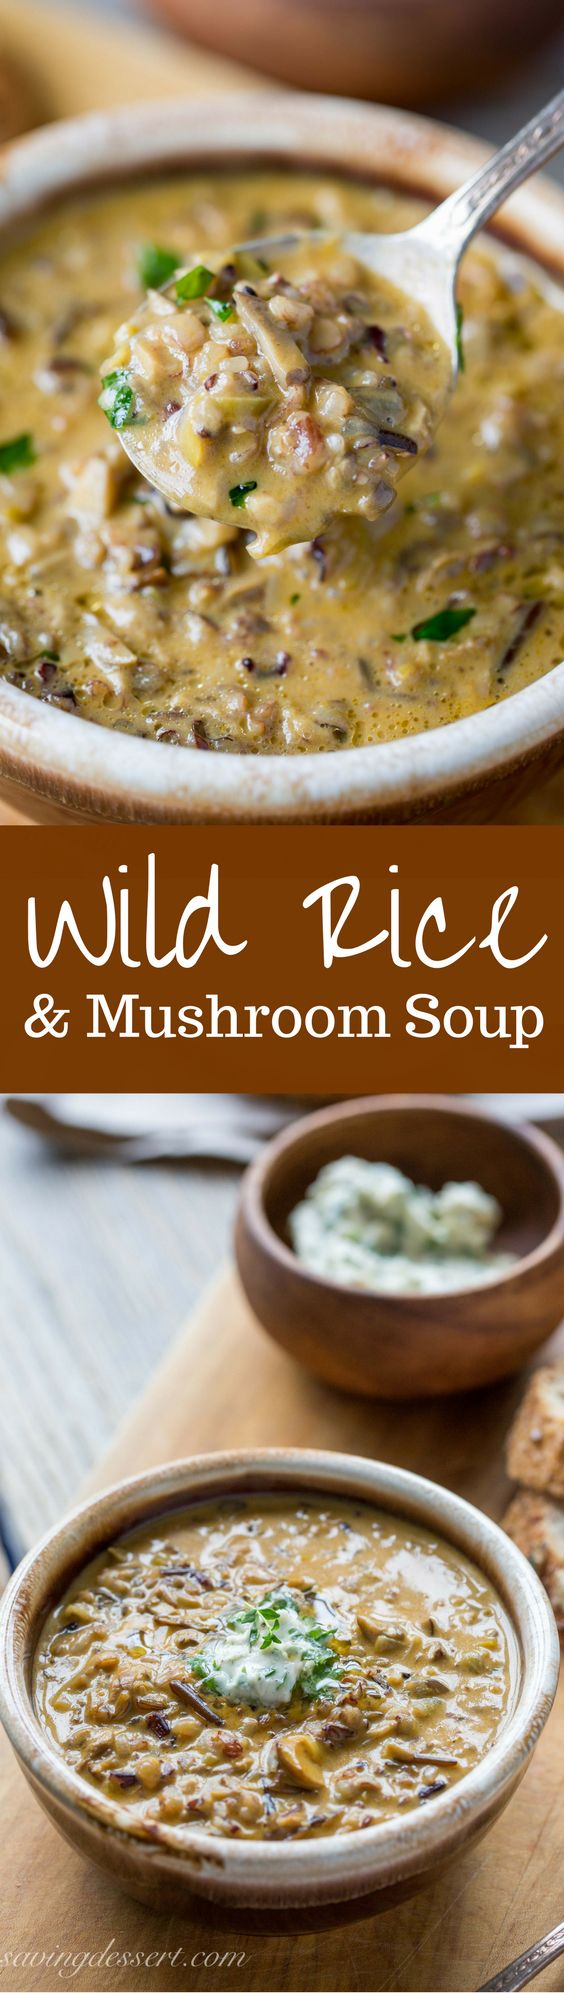 Wild Rice & Mushroom Soup with Parsley Butter -Rich, hearty, earthy and comforting - this soup is unique and perfect for the mushroom lover in your house. Can't wait to try this!